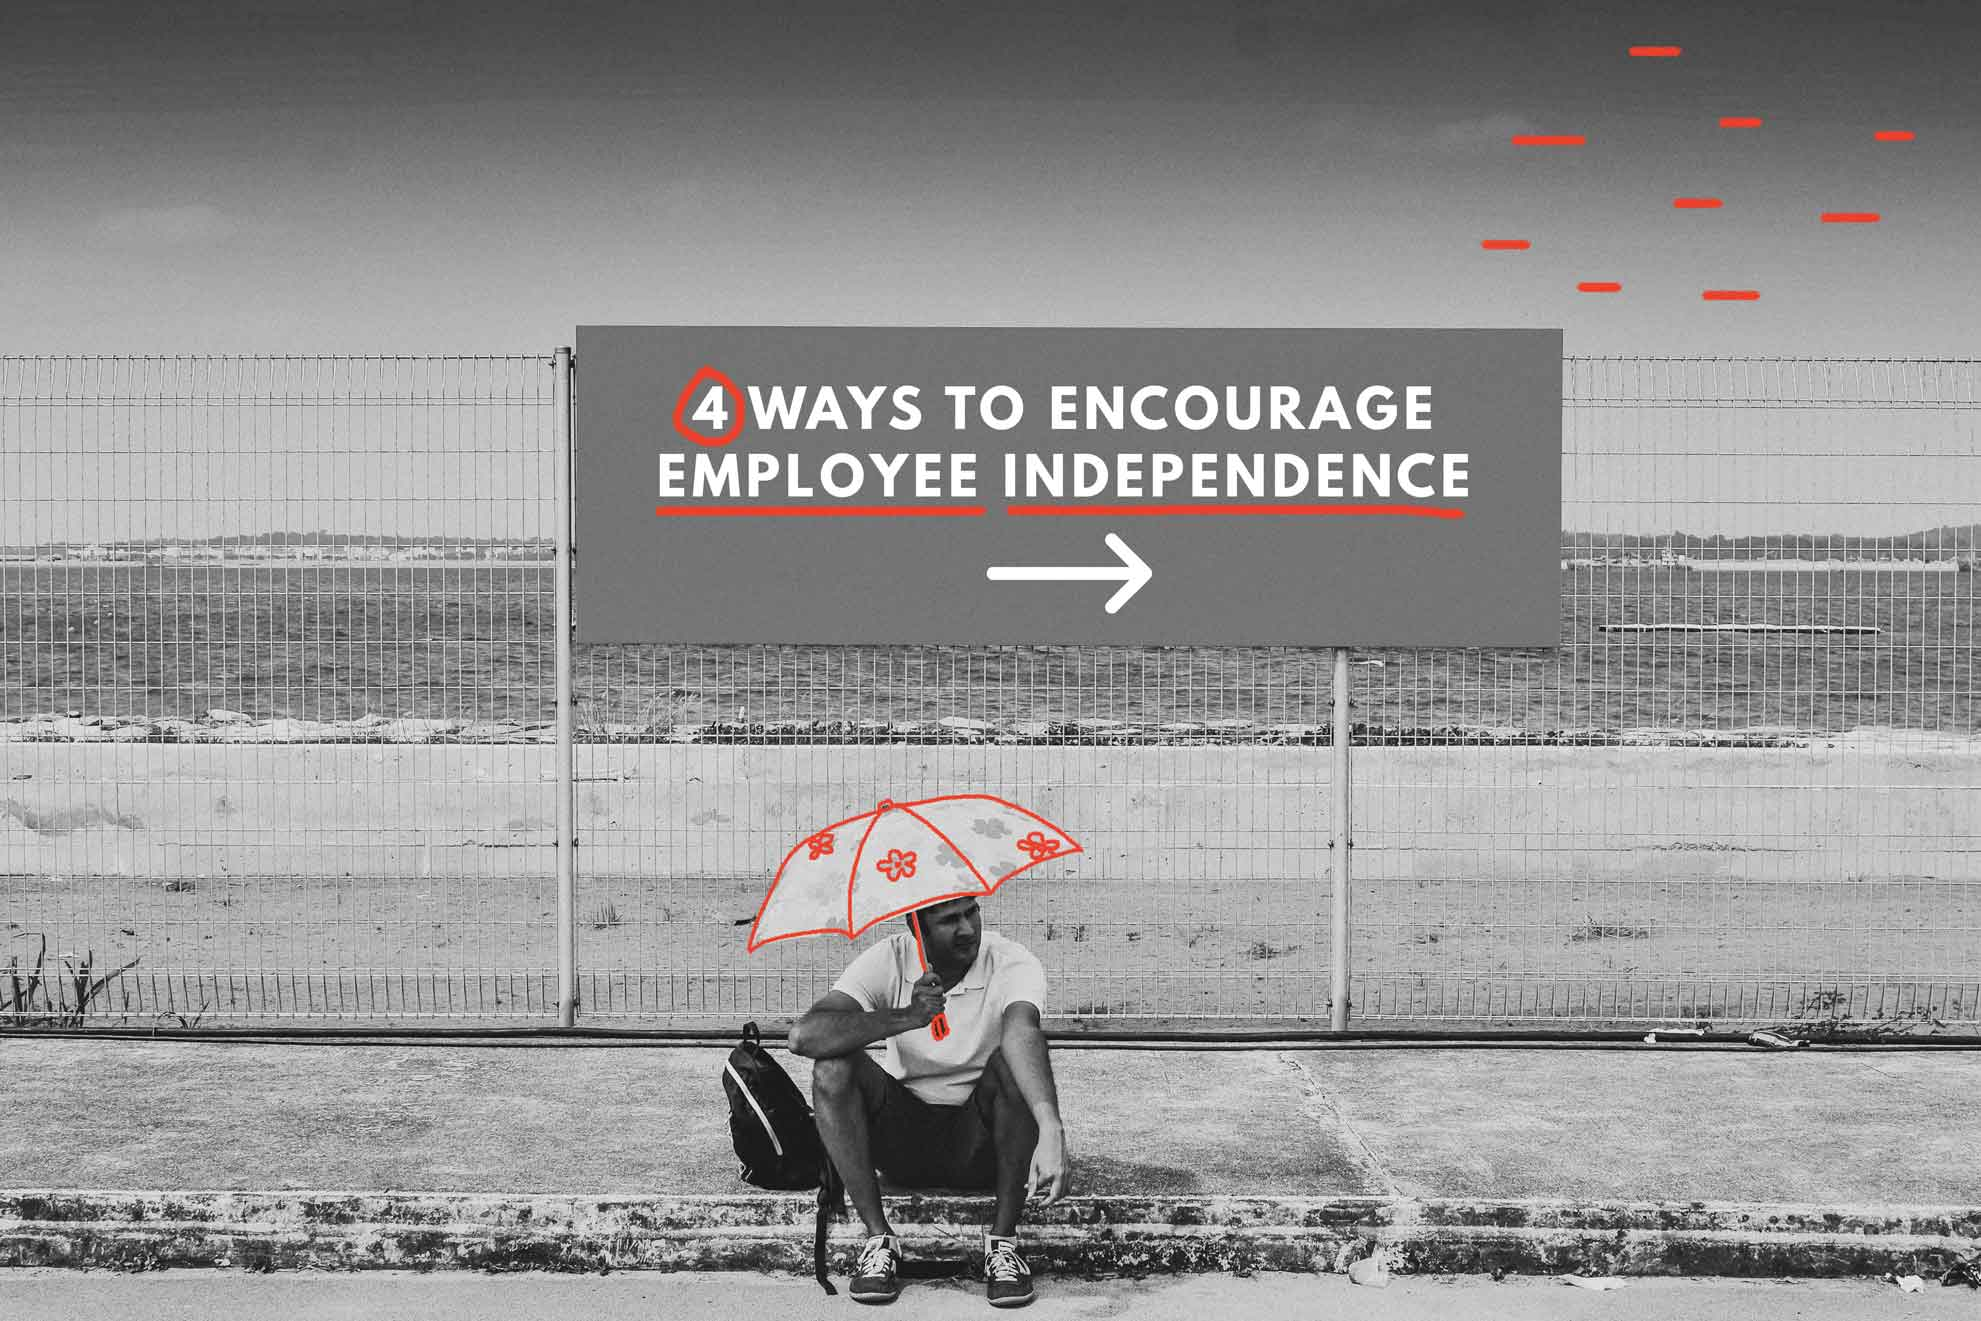 Employee Independence - 4 Ways to encourage it in the workplace